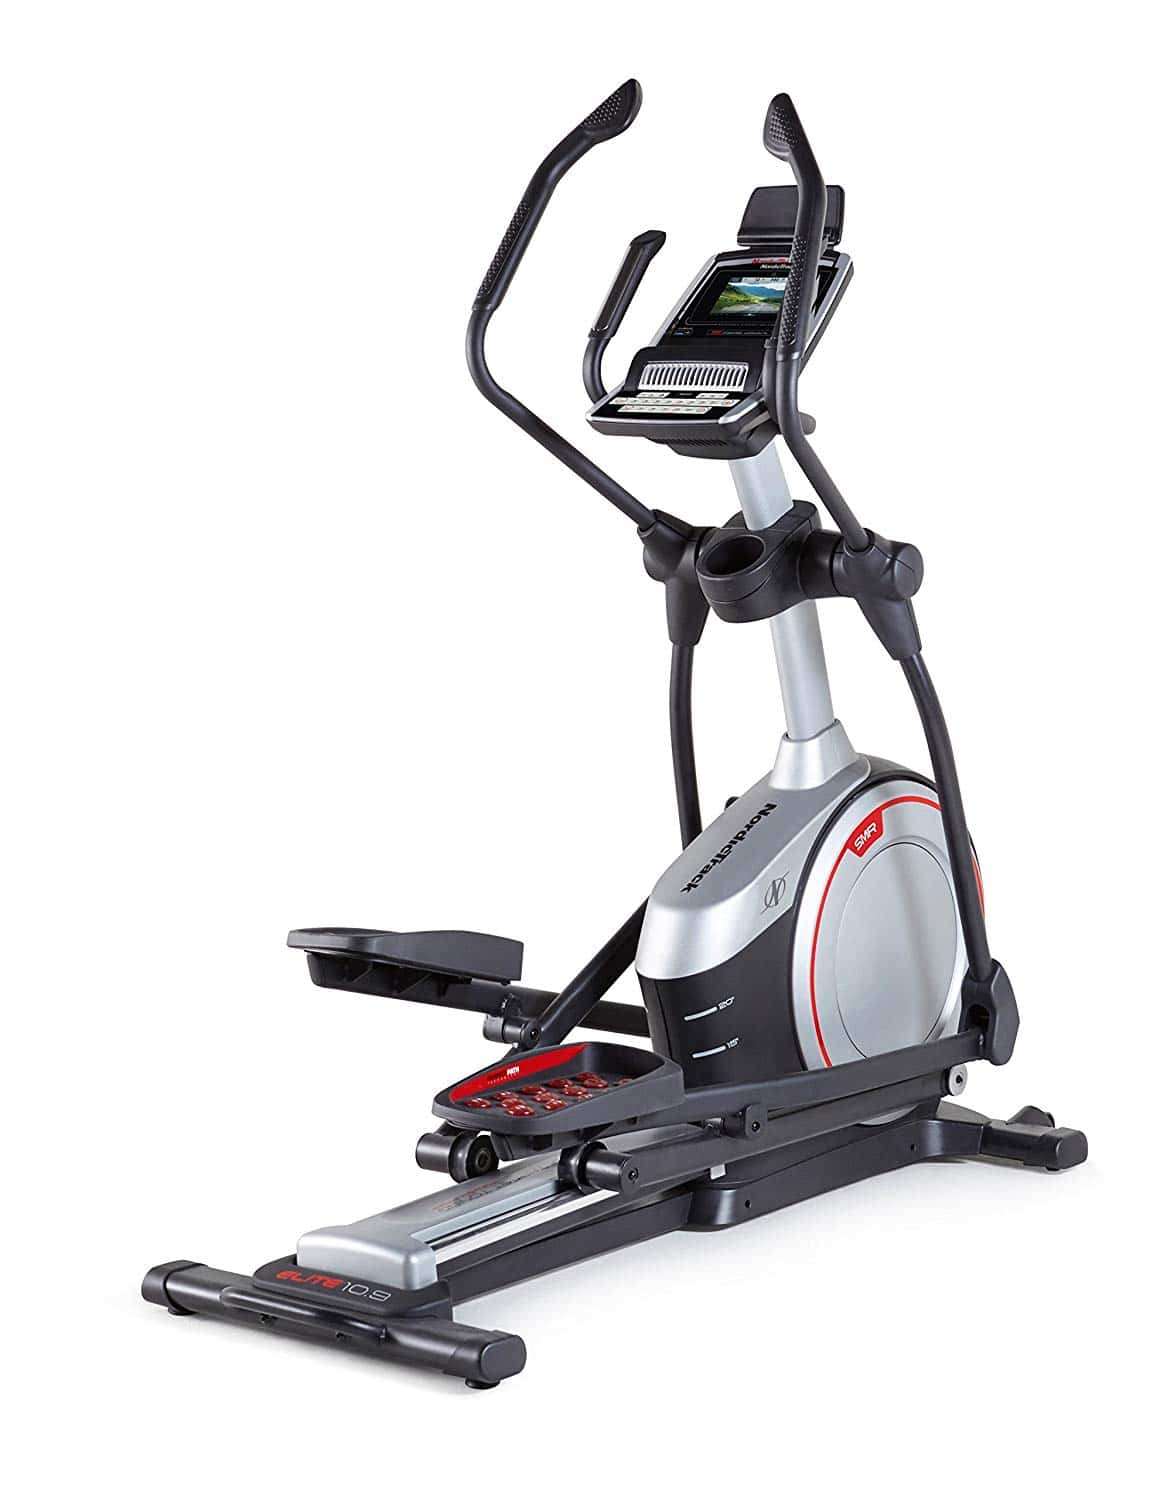 NordicTrack SE9i Elliptical Trainers Review 2019